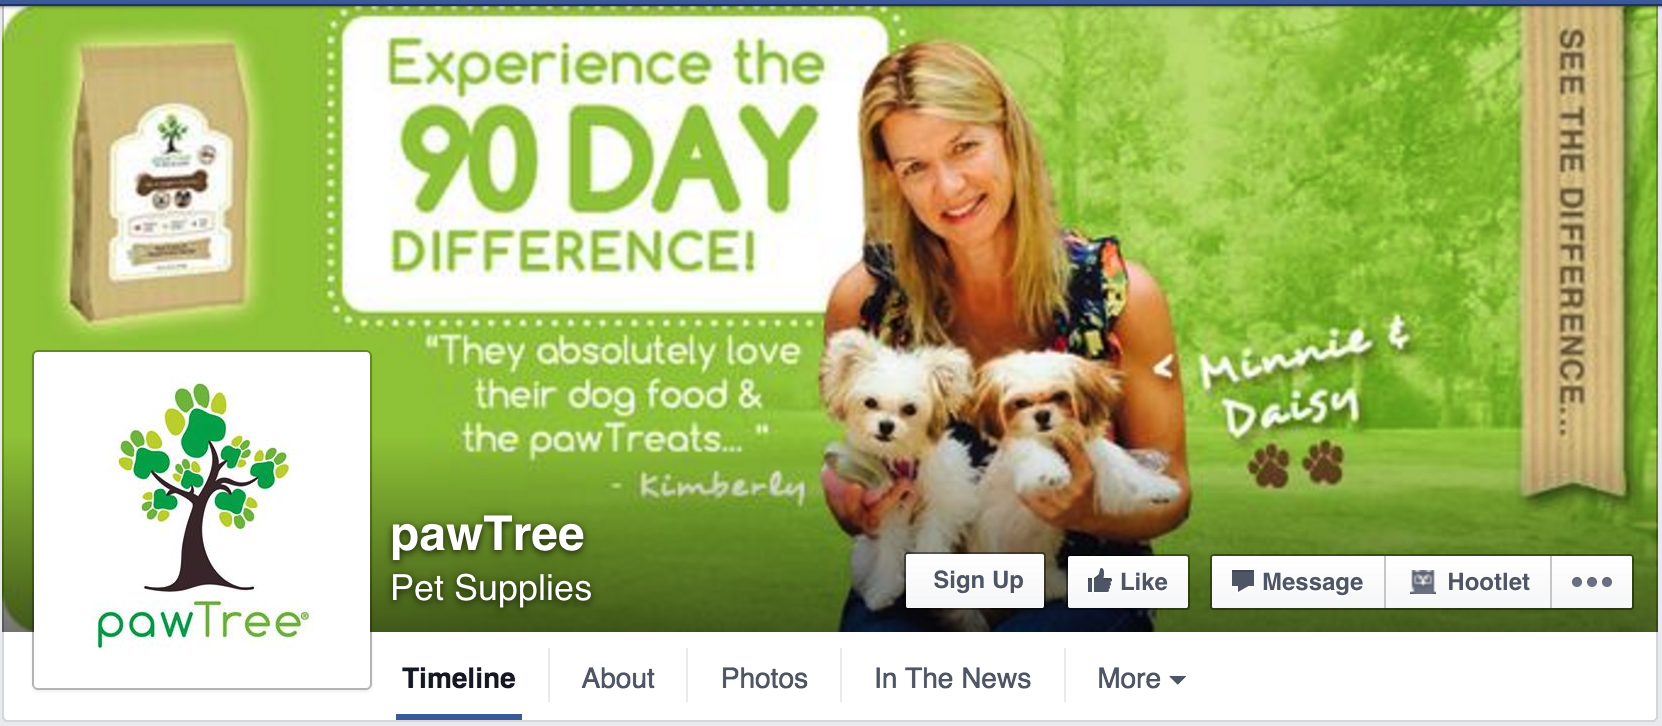 pawTree - Facebook